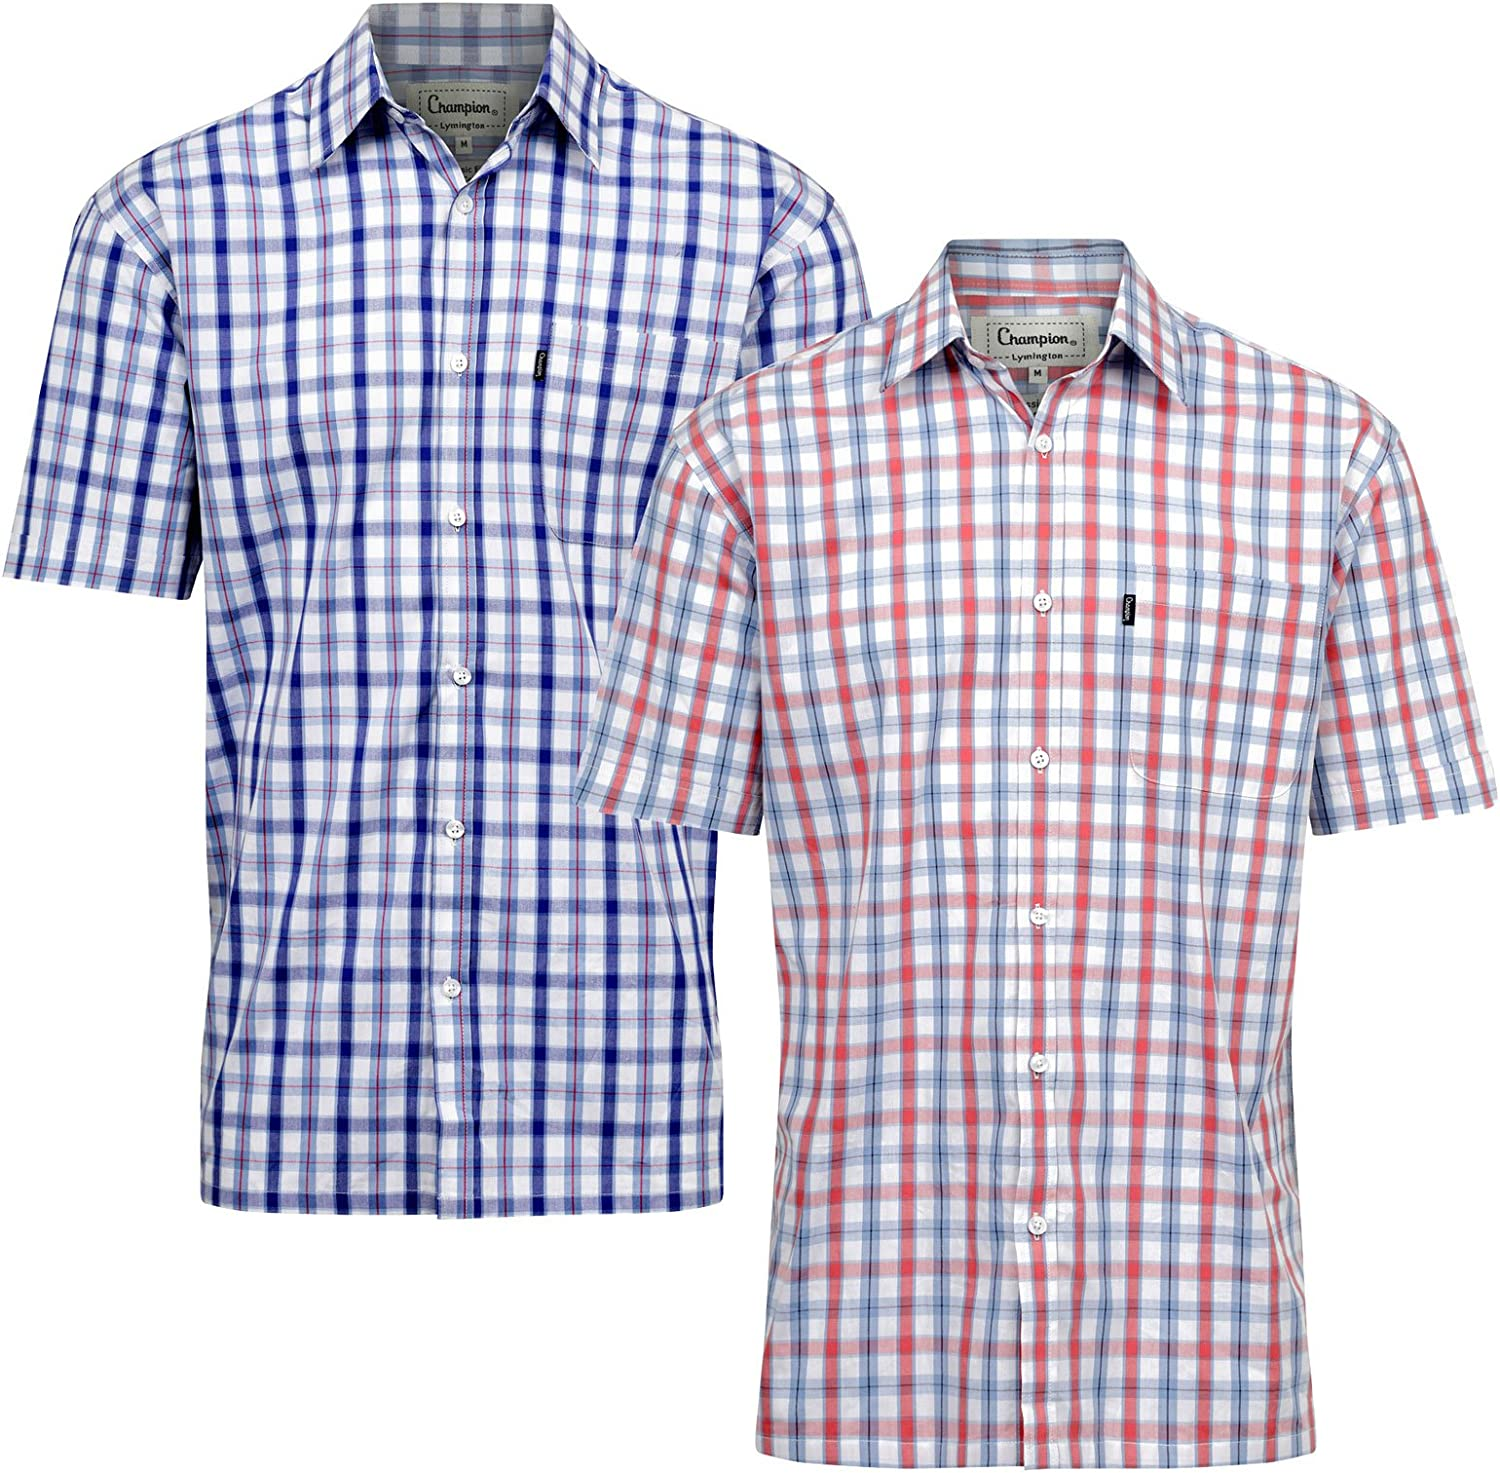 Fenside Country Clothing - Camisa casual - para hombre ...